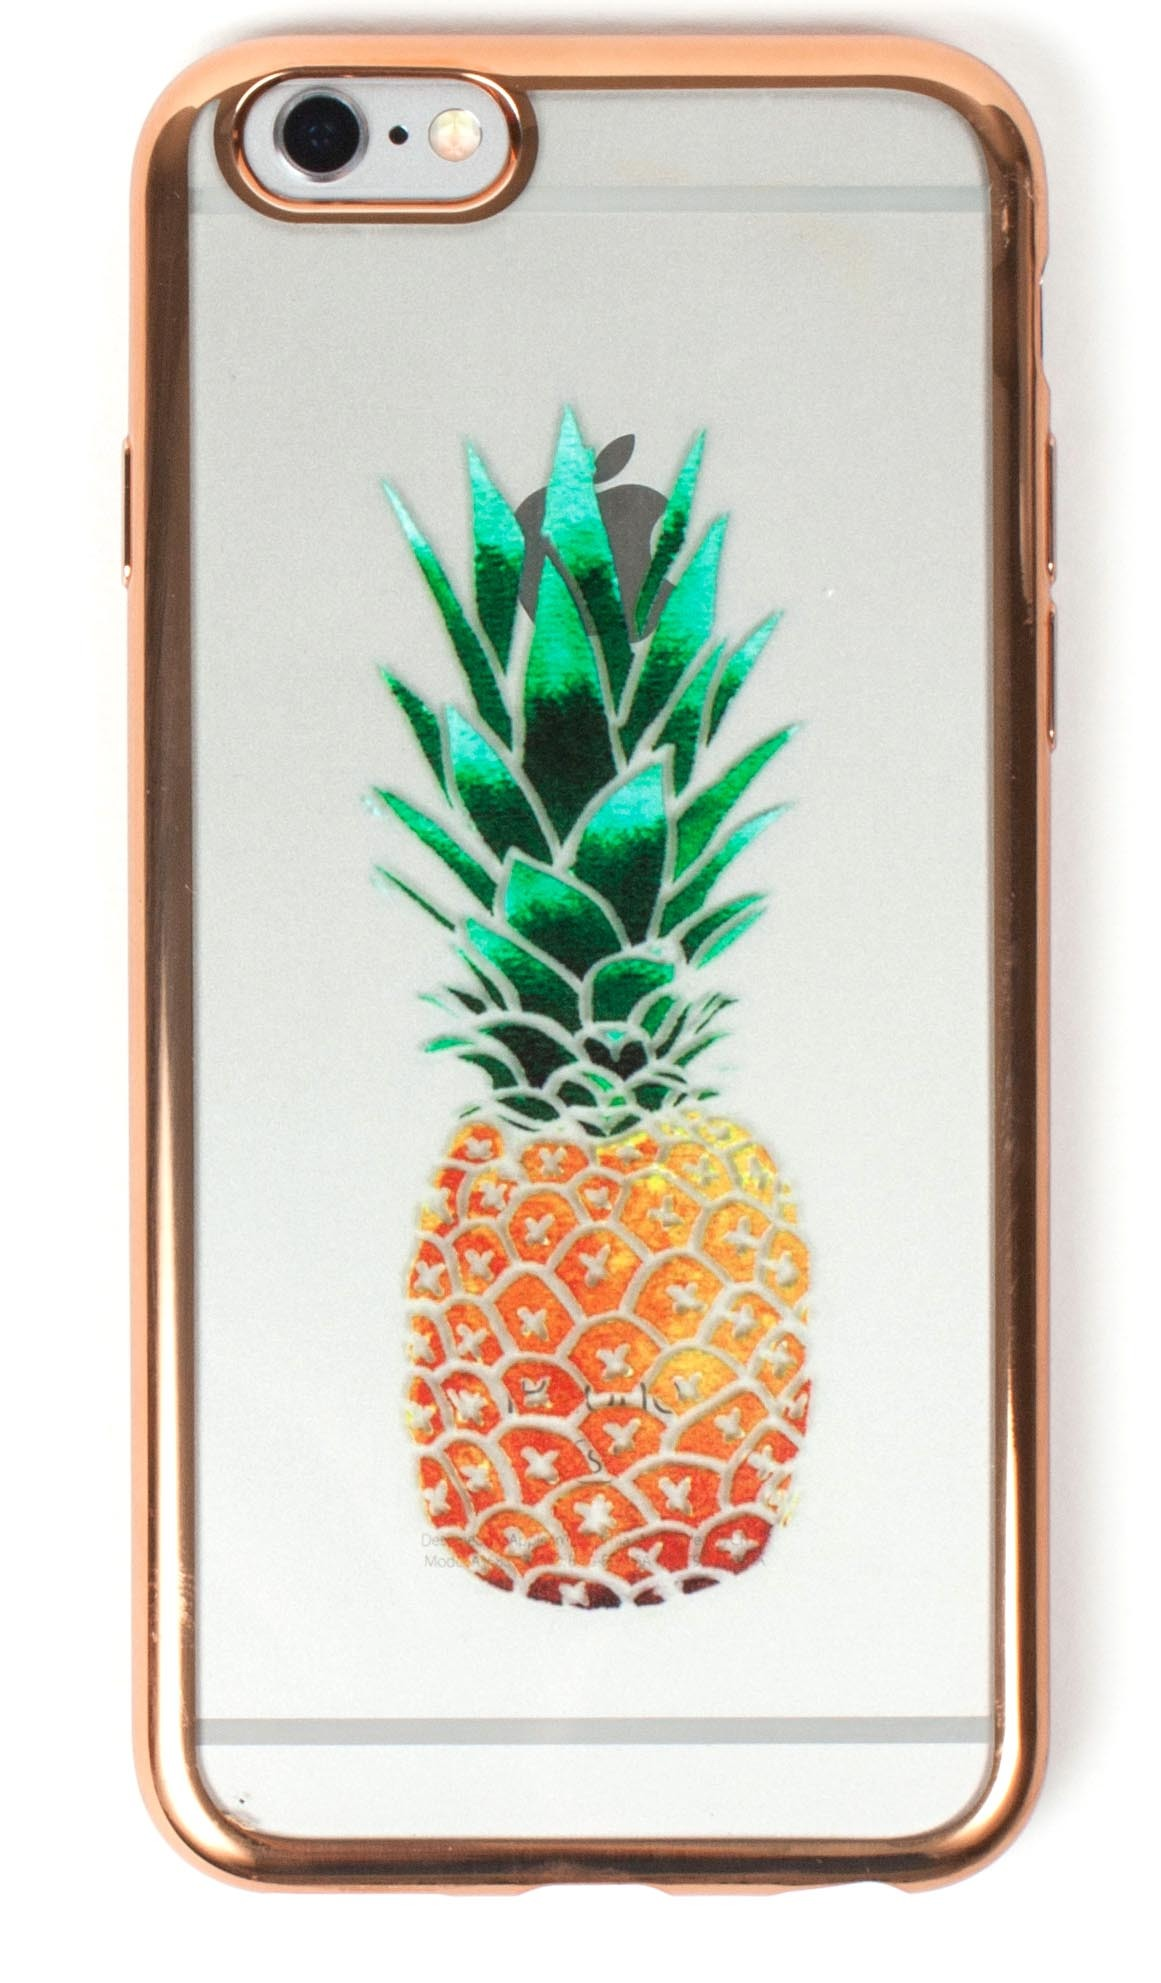 newest 12969 63f5a IPhone 7 Case, YogaCase MetalEdge Silicone Back Protective Cover (Pineapple  Rose Gold) - YogaCase